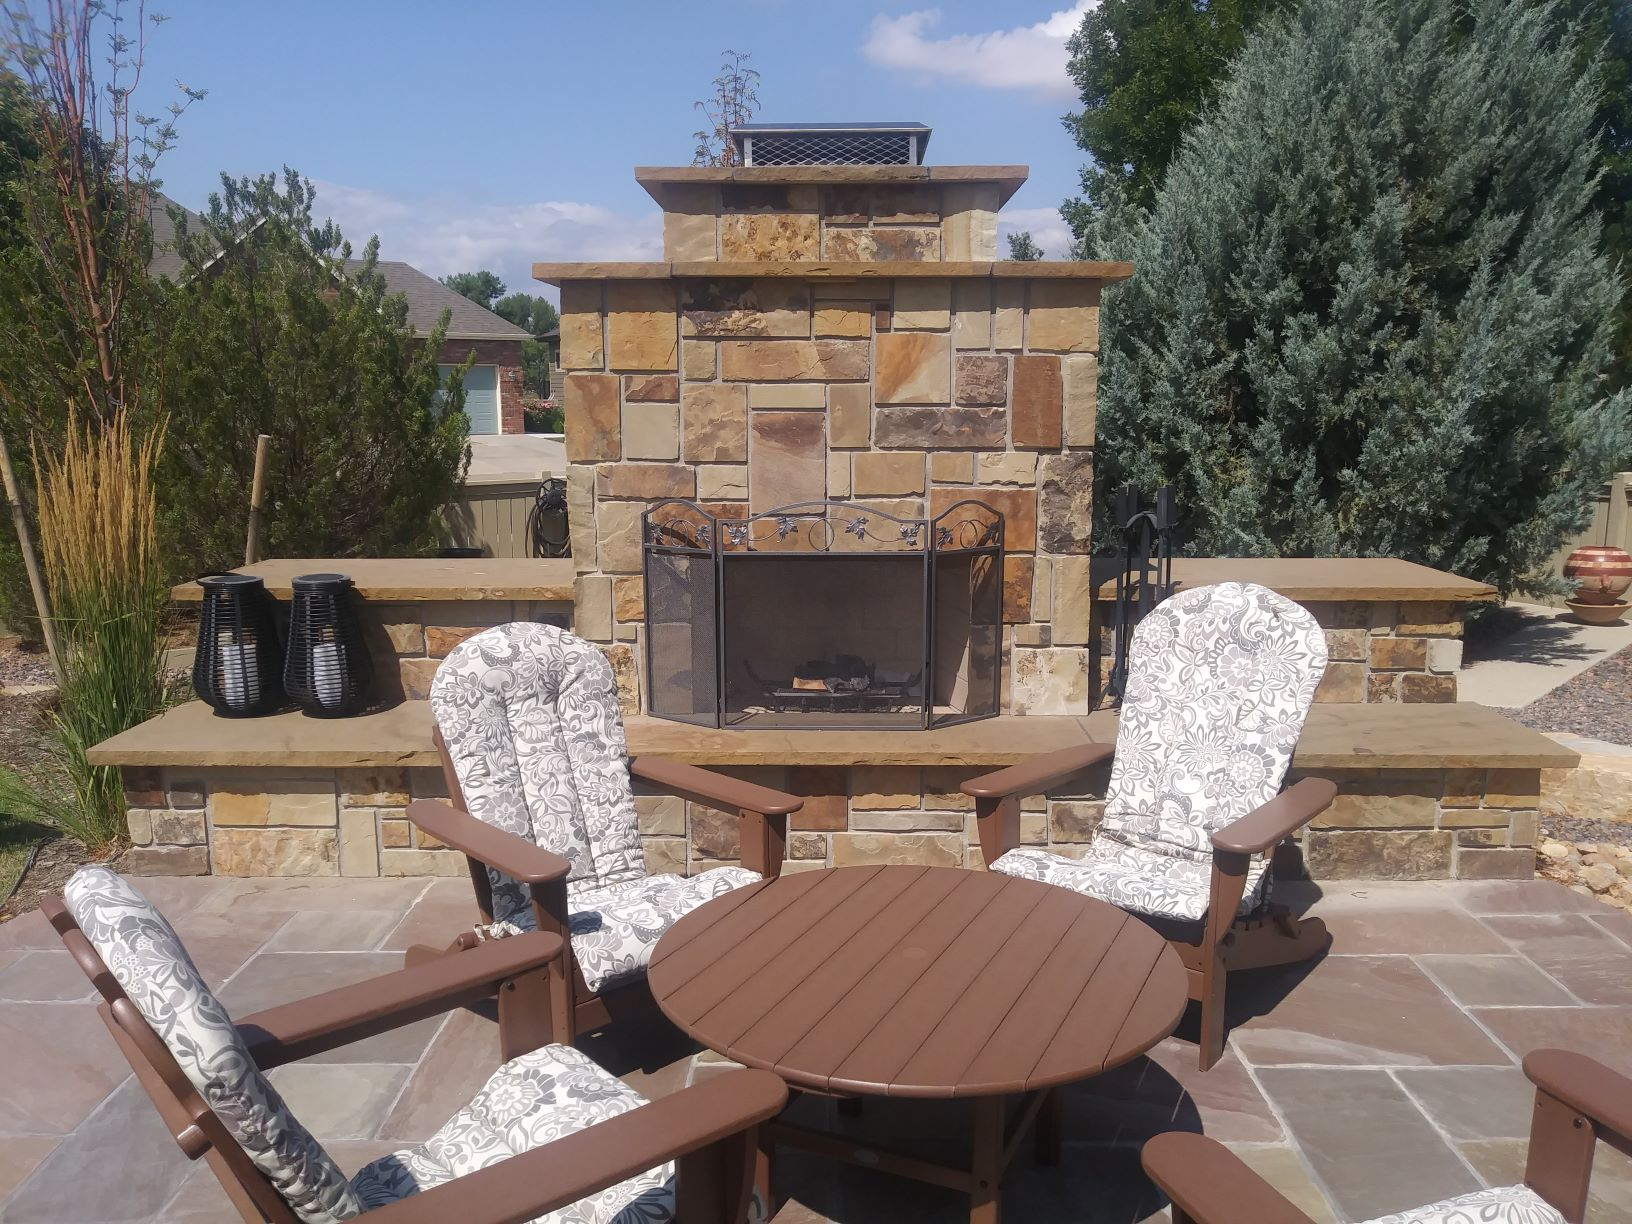 Outdoor Fireplace with large stone chimney and seating area in front.